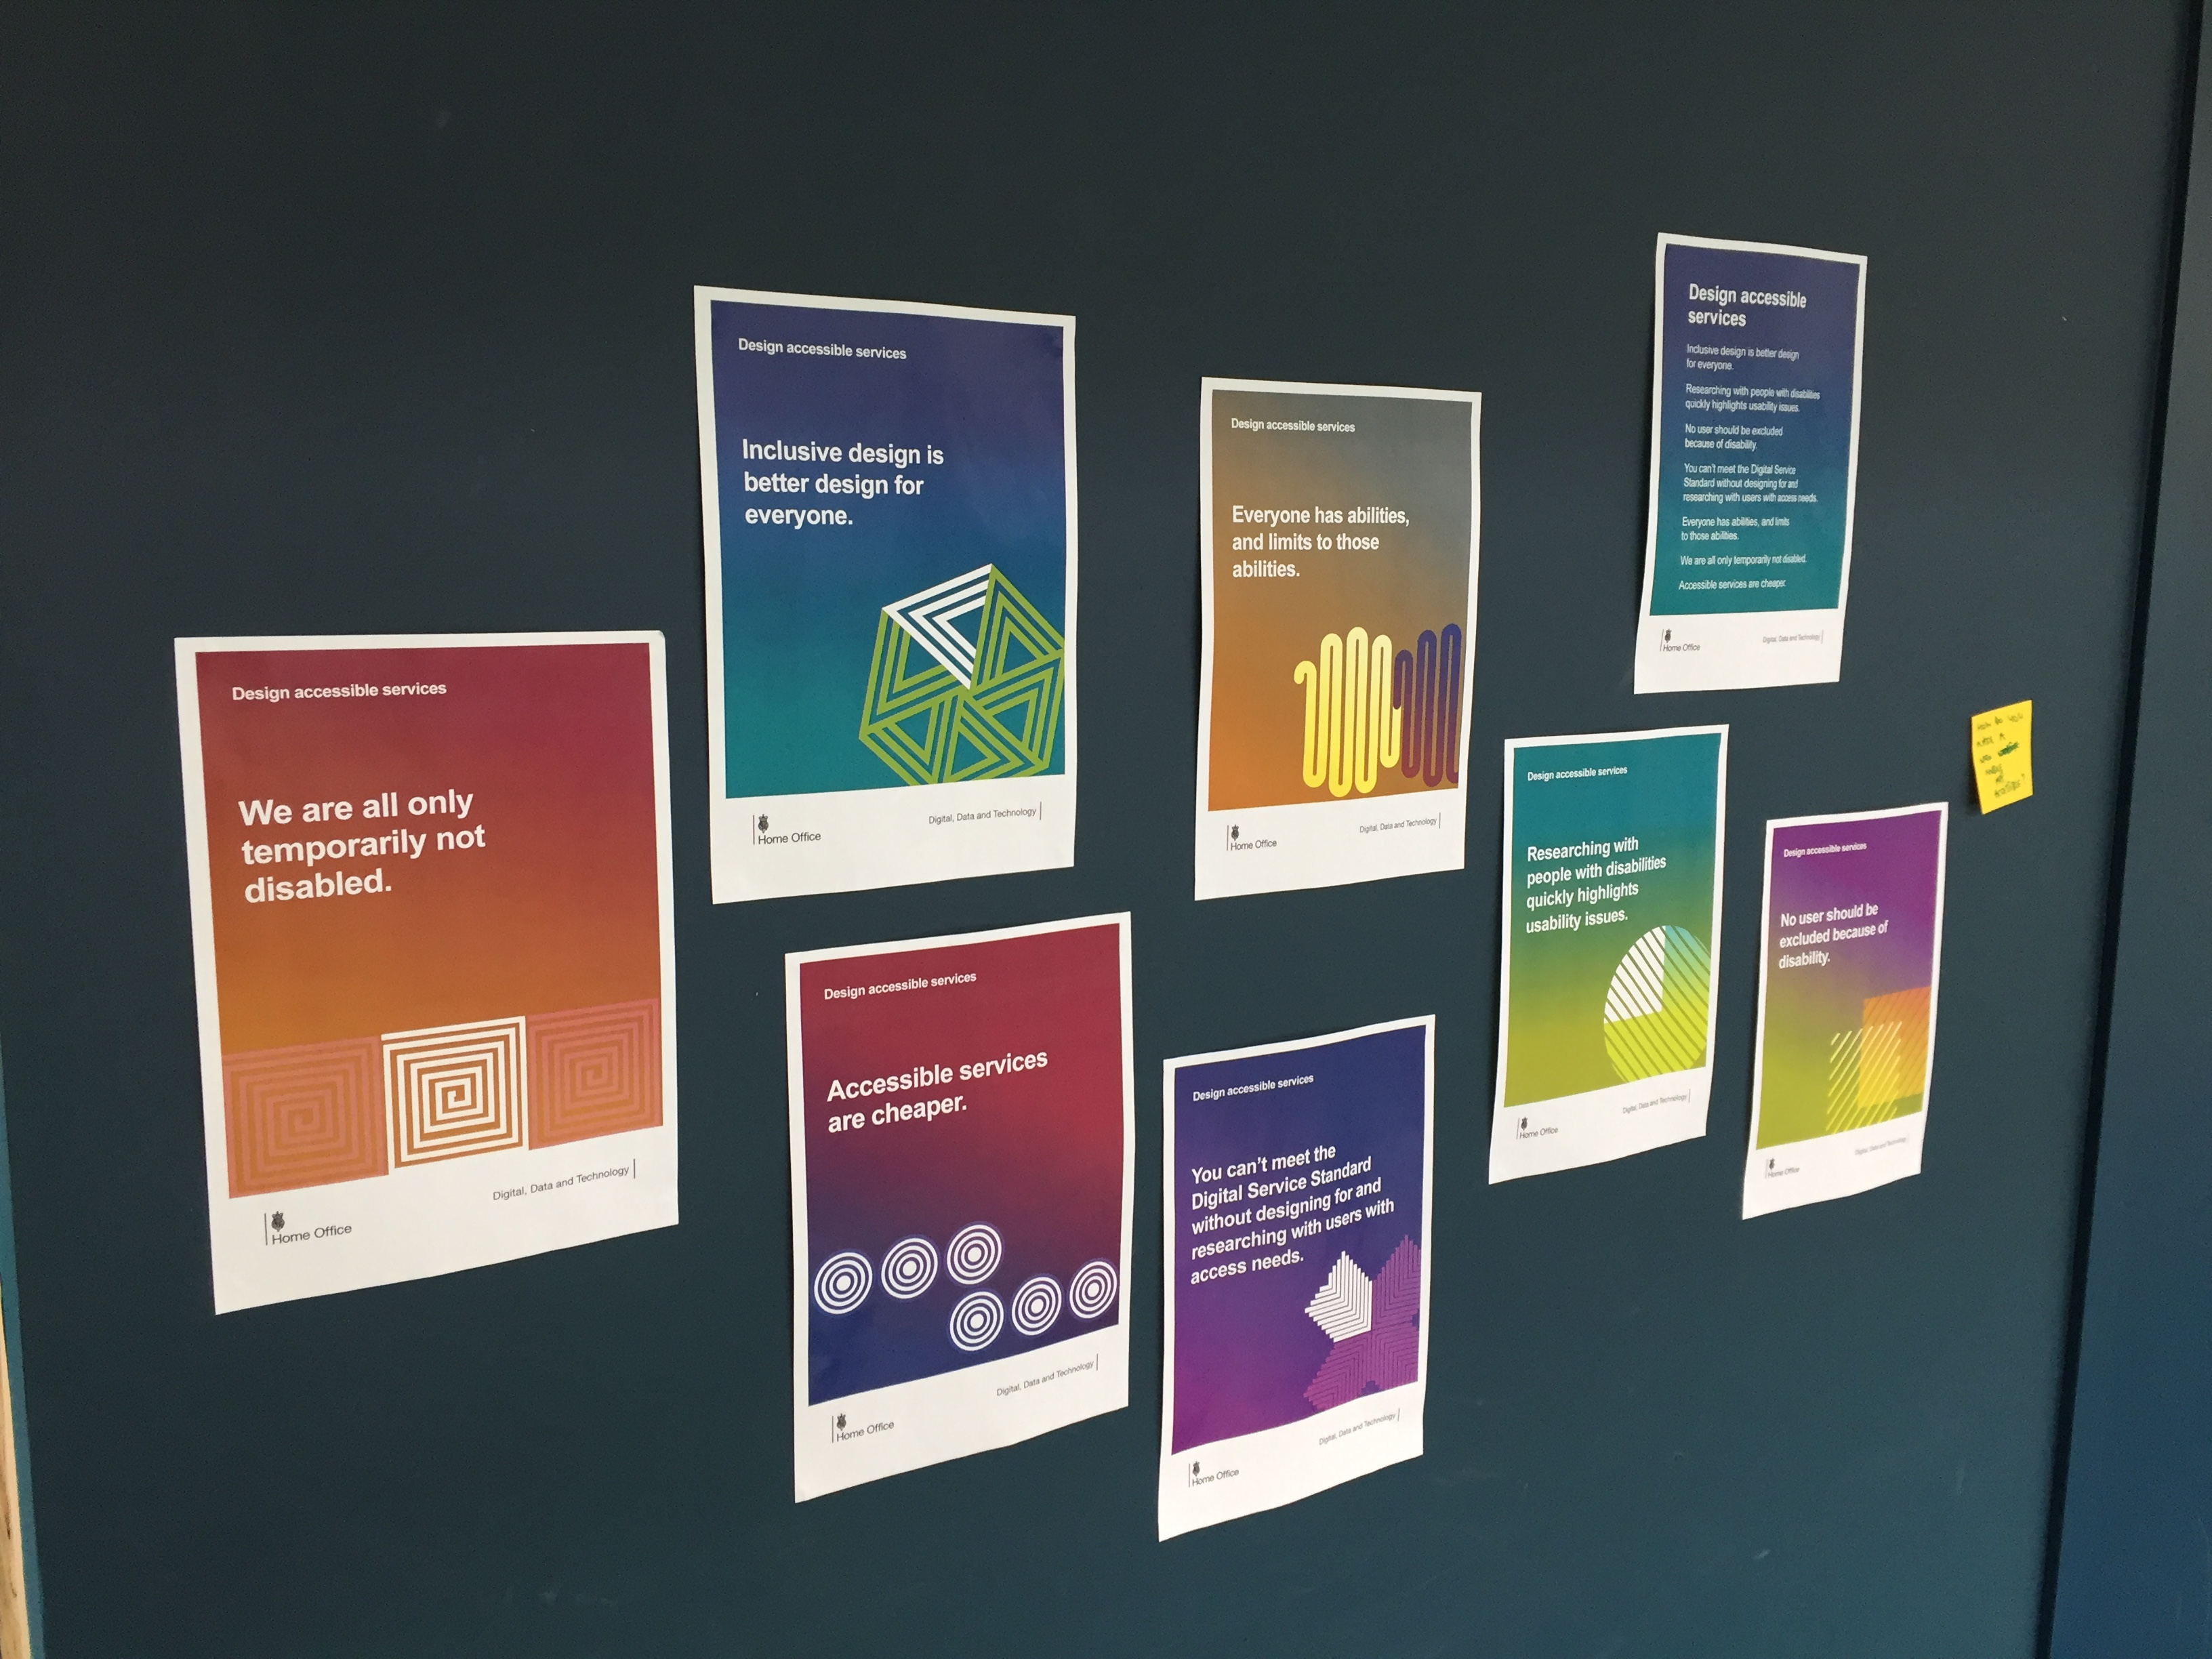 Design accessible services advice posters made by the Home Office